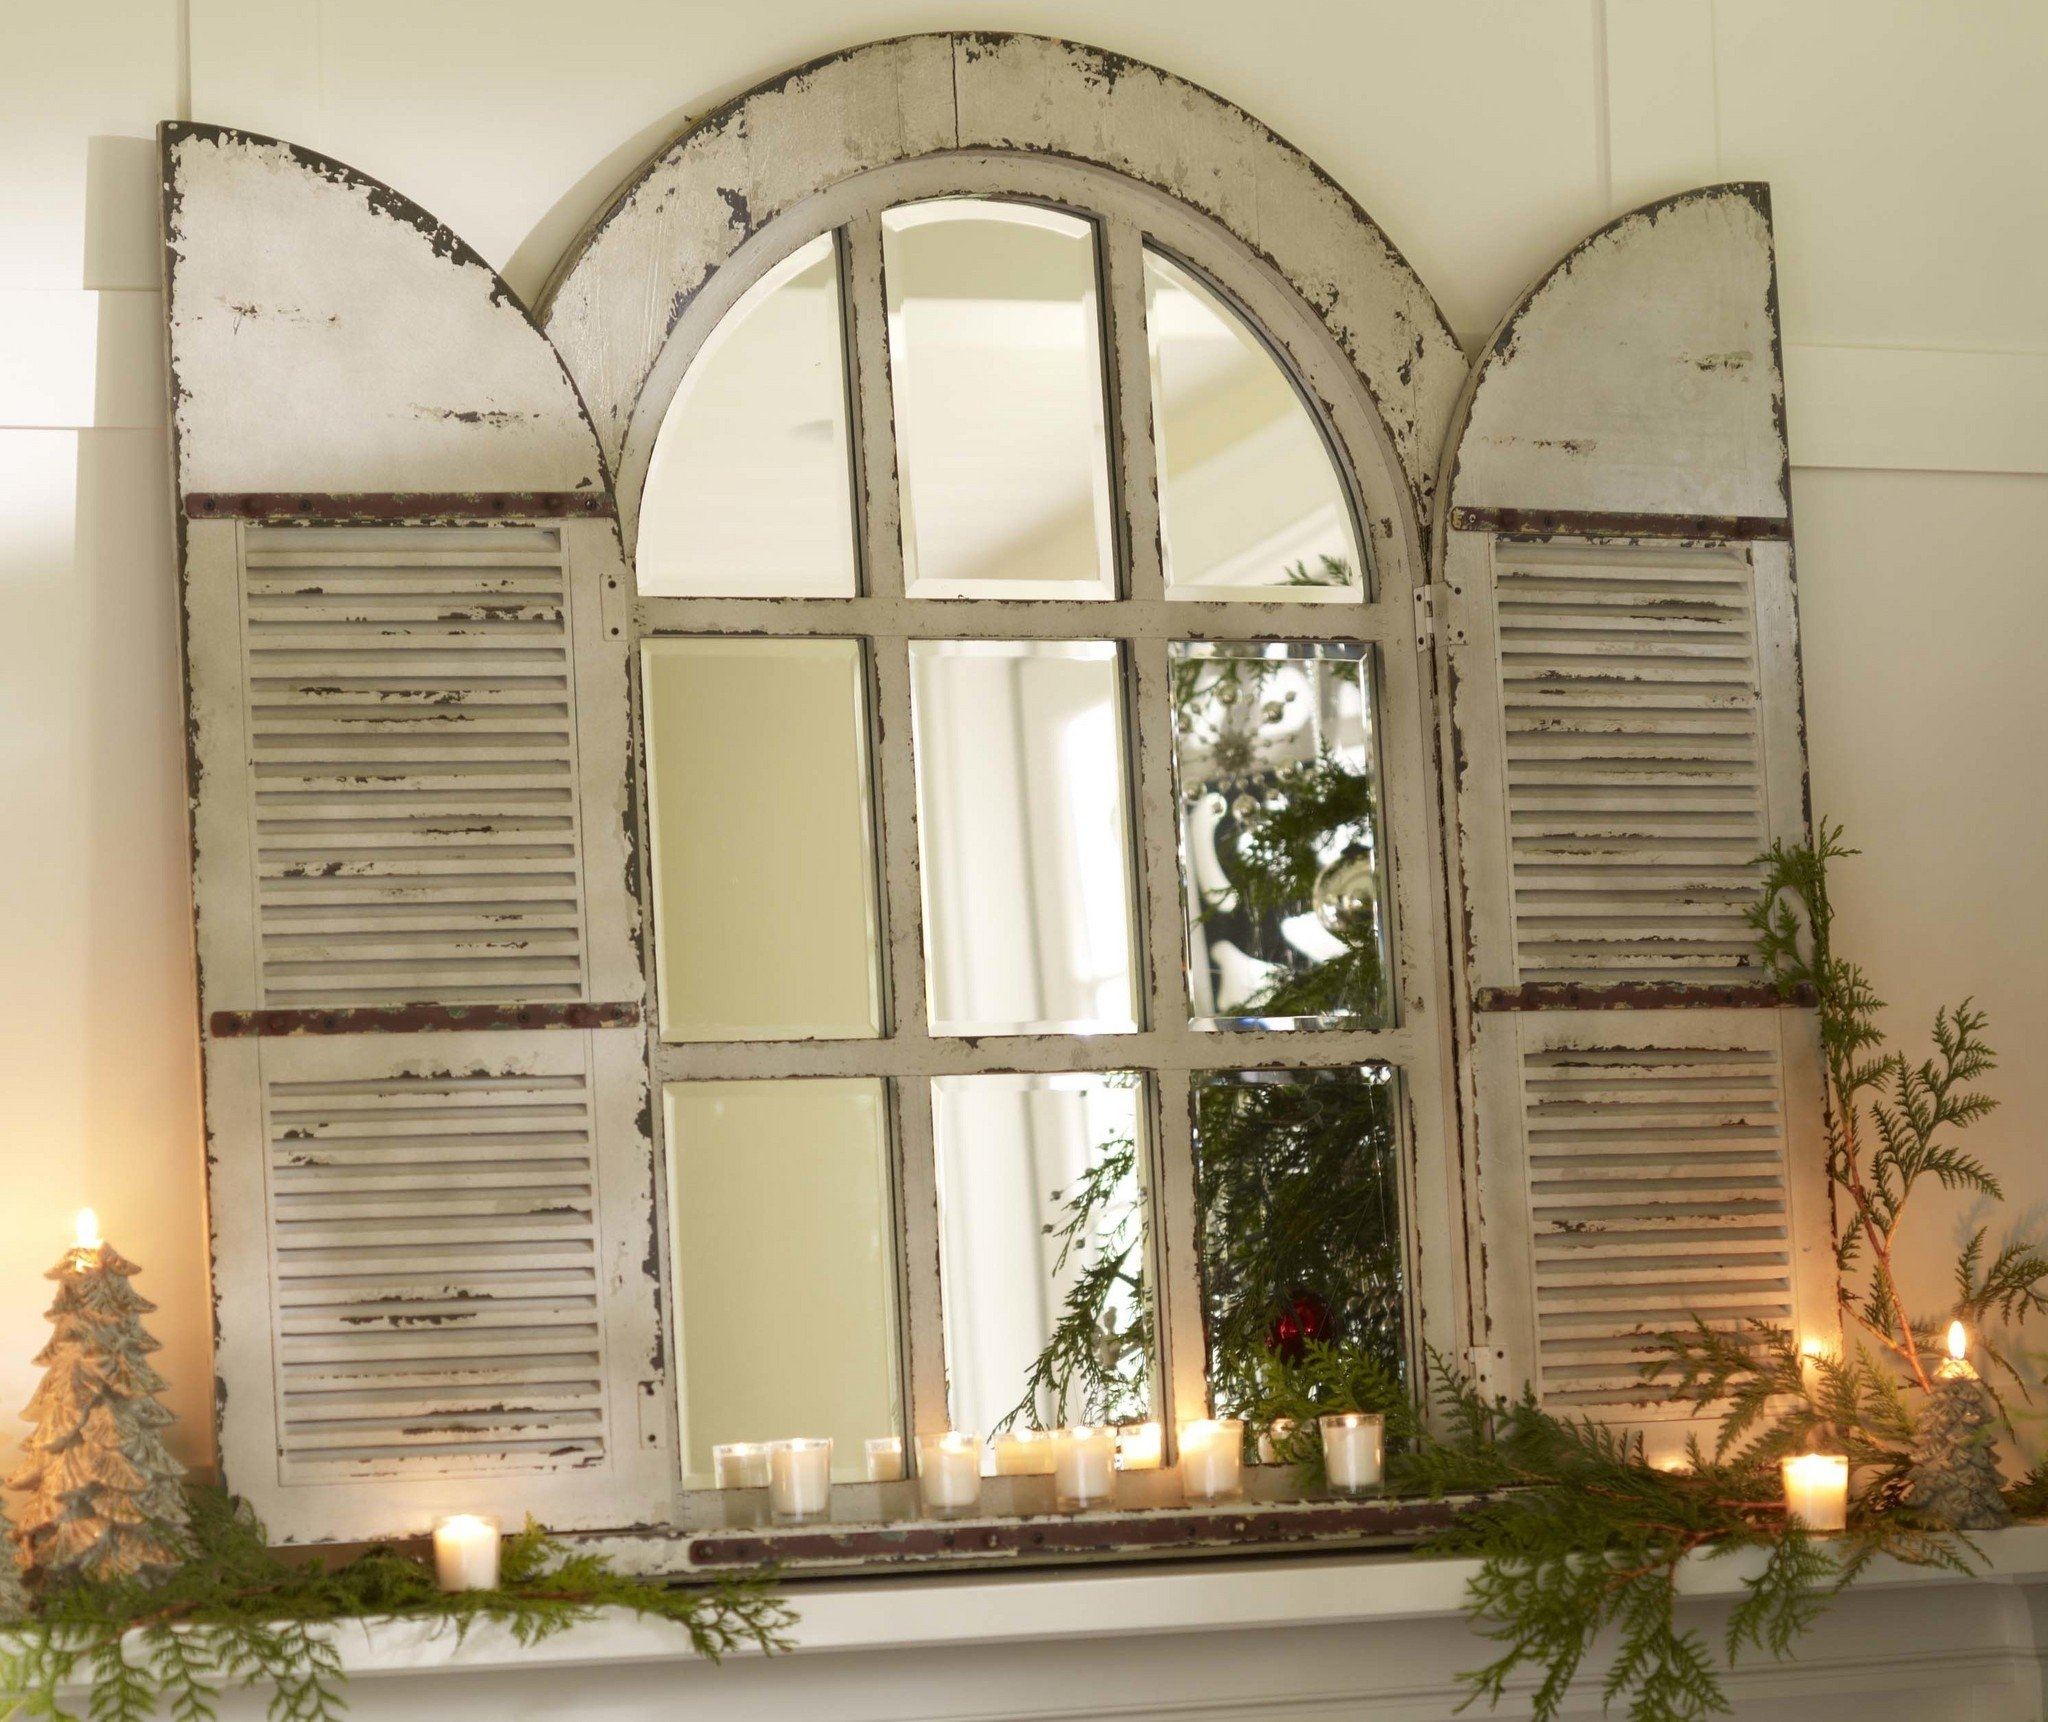 Bring The Great Outdoors Indoors Shab Chic Och Friluftsliv Intended For Shabby Chic Window Mirror (Image 5 of 15)